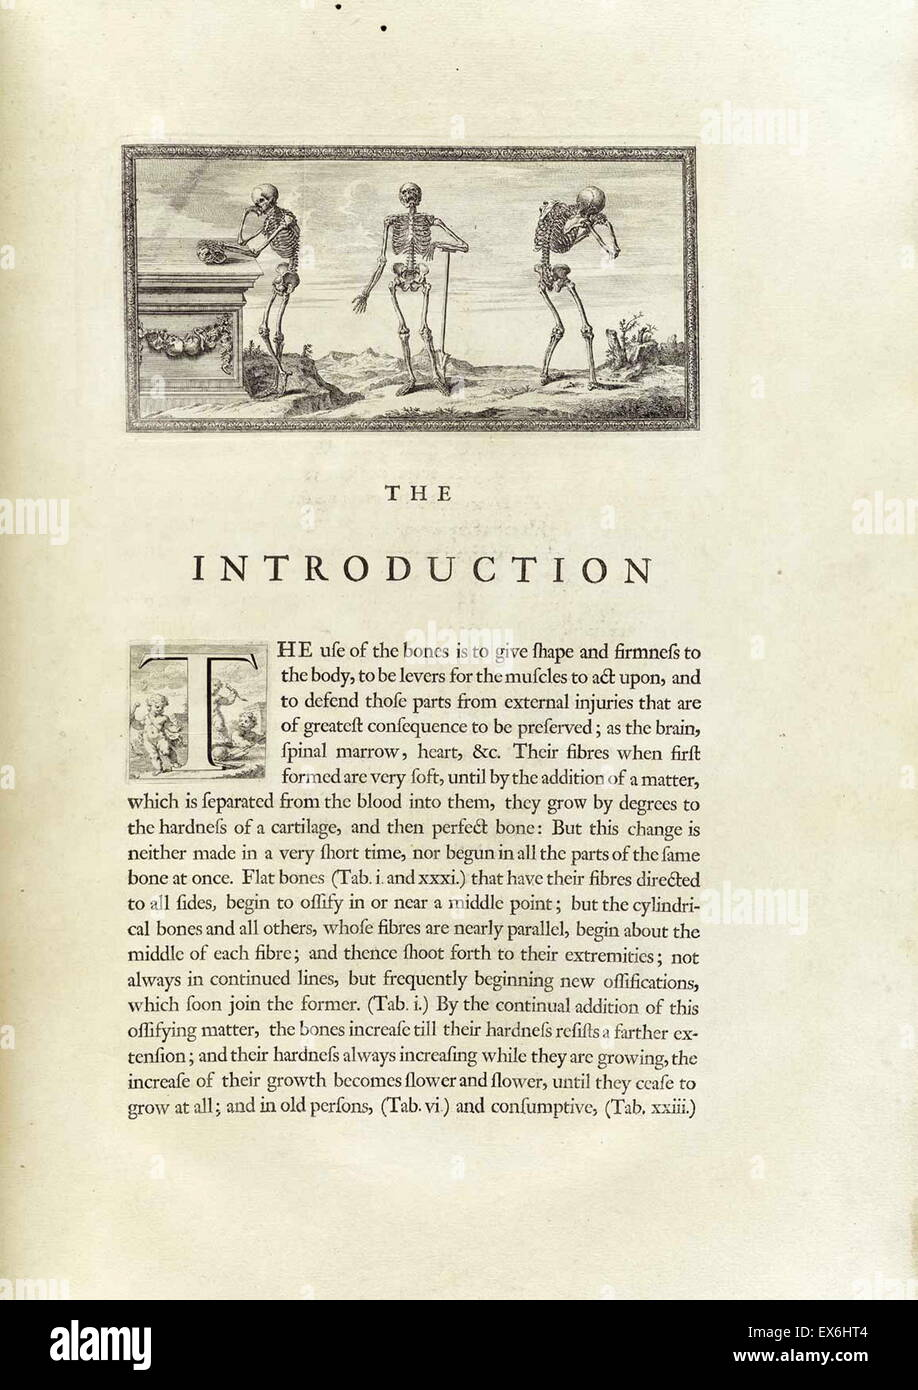 Anatomical drawings by William Cheselden in Osteographia, or The anatomy of the bones. (London: 1733). - Stock Image